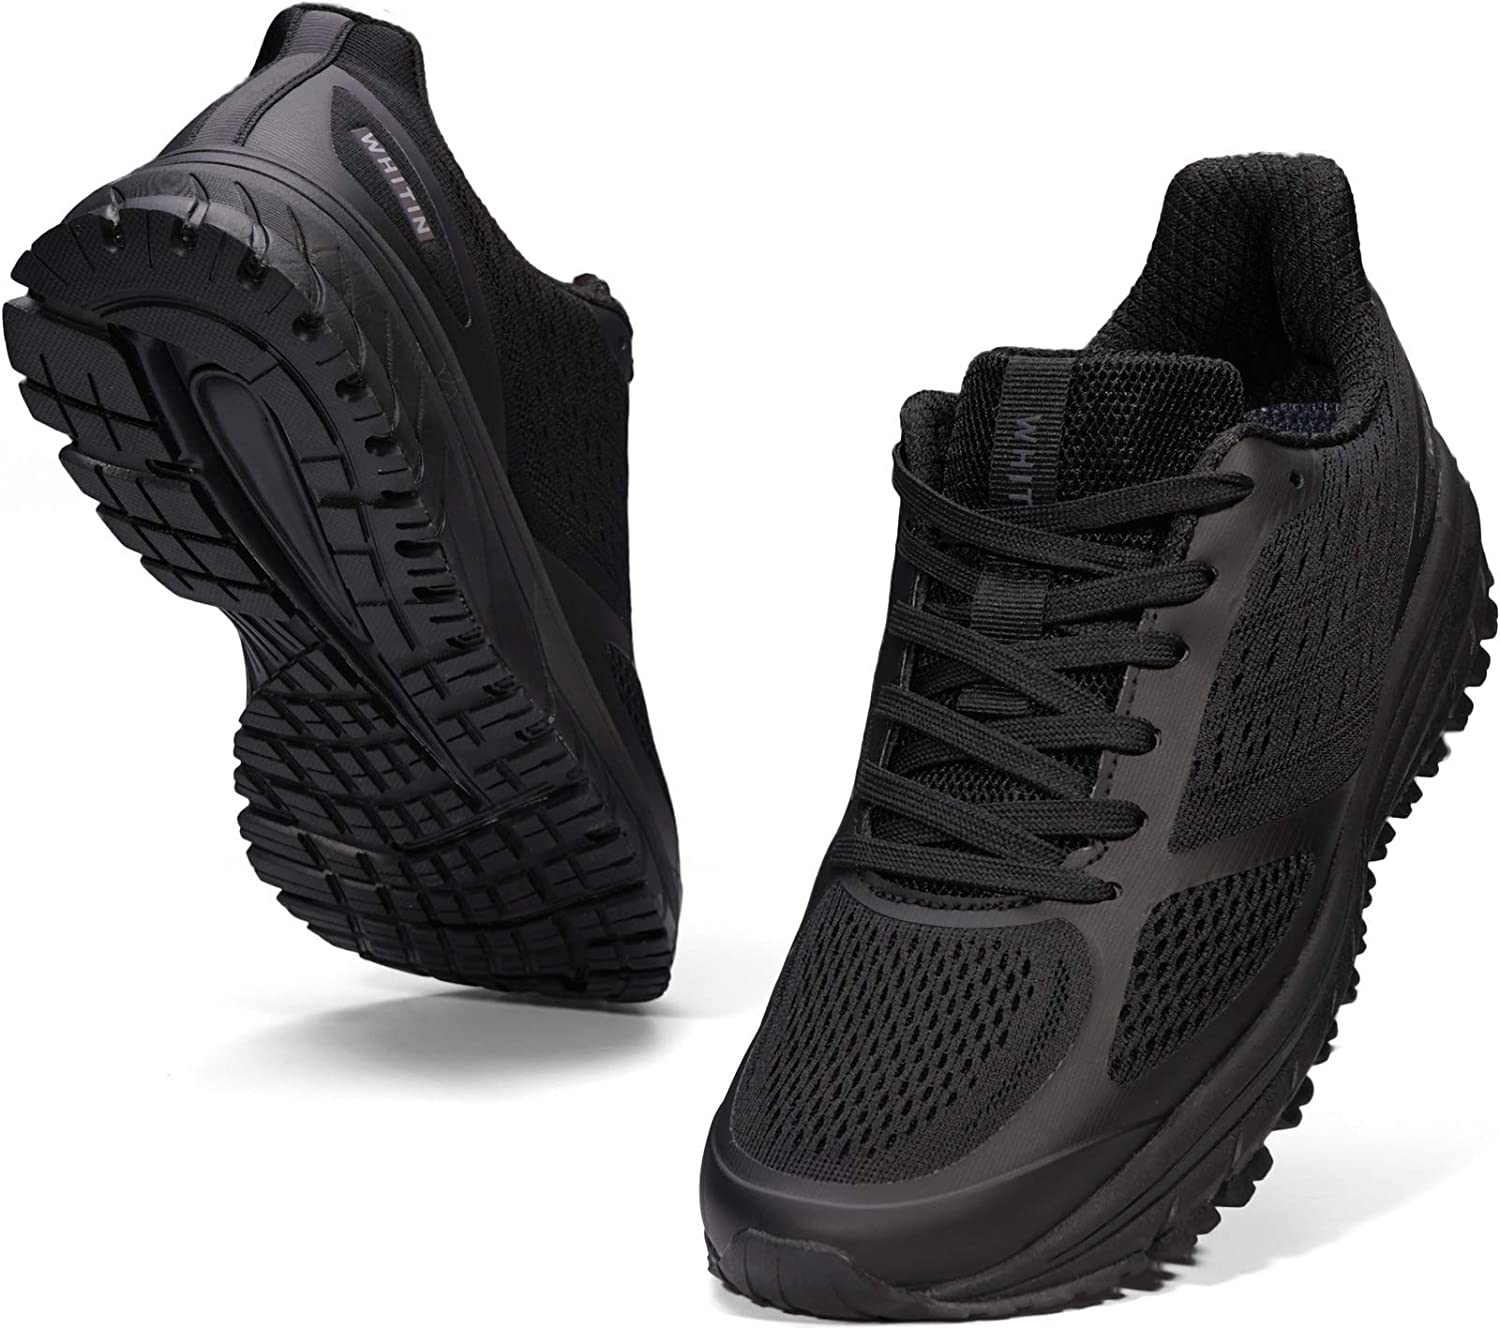 JOOMRA Men's Supportive Running Shoes Lightweight Athletic Sneakers